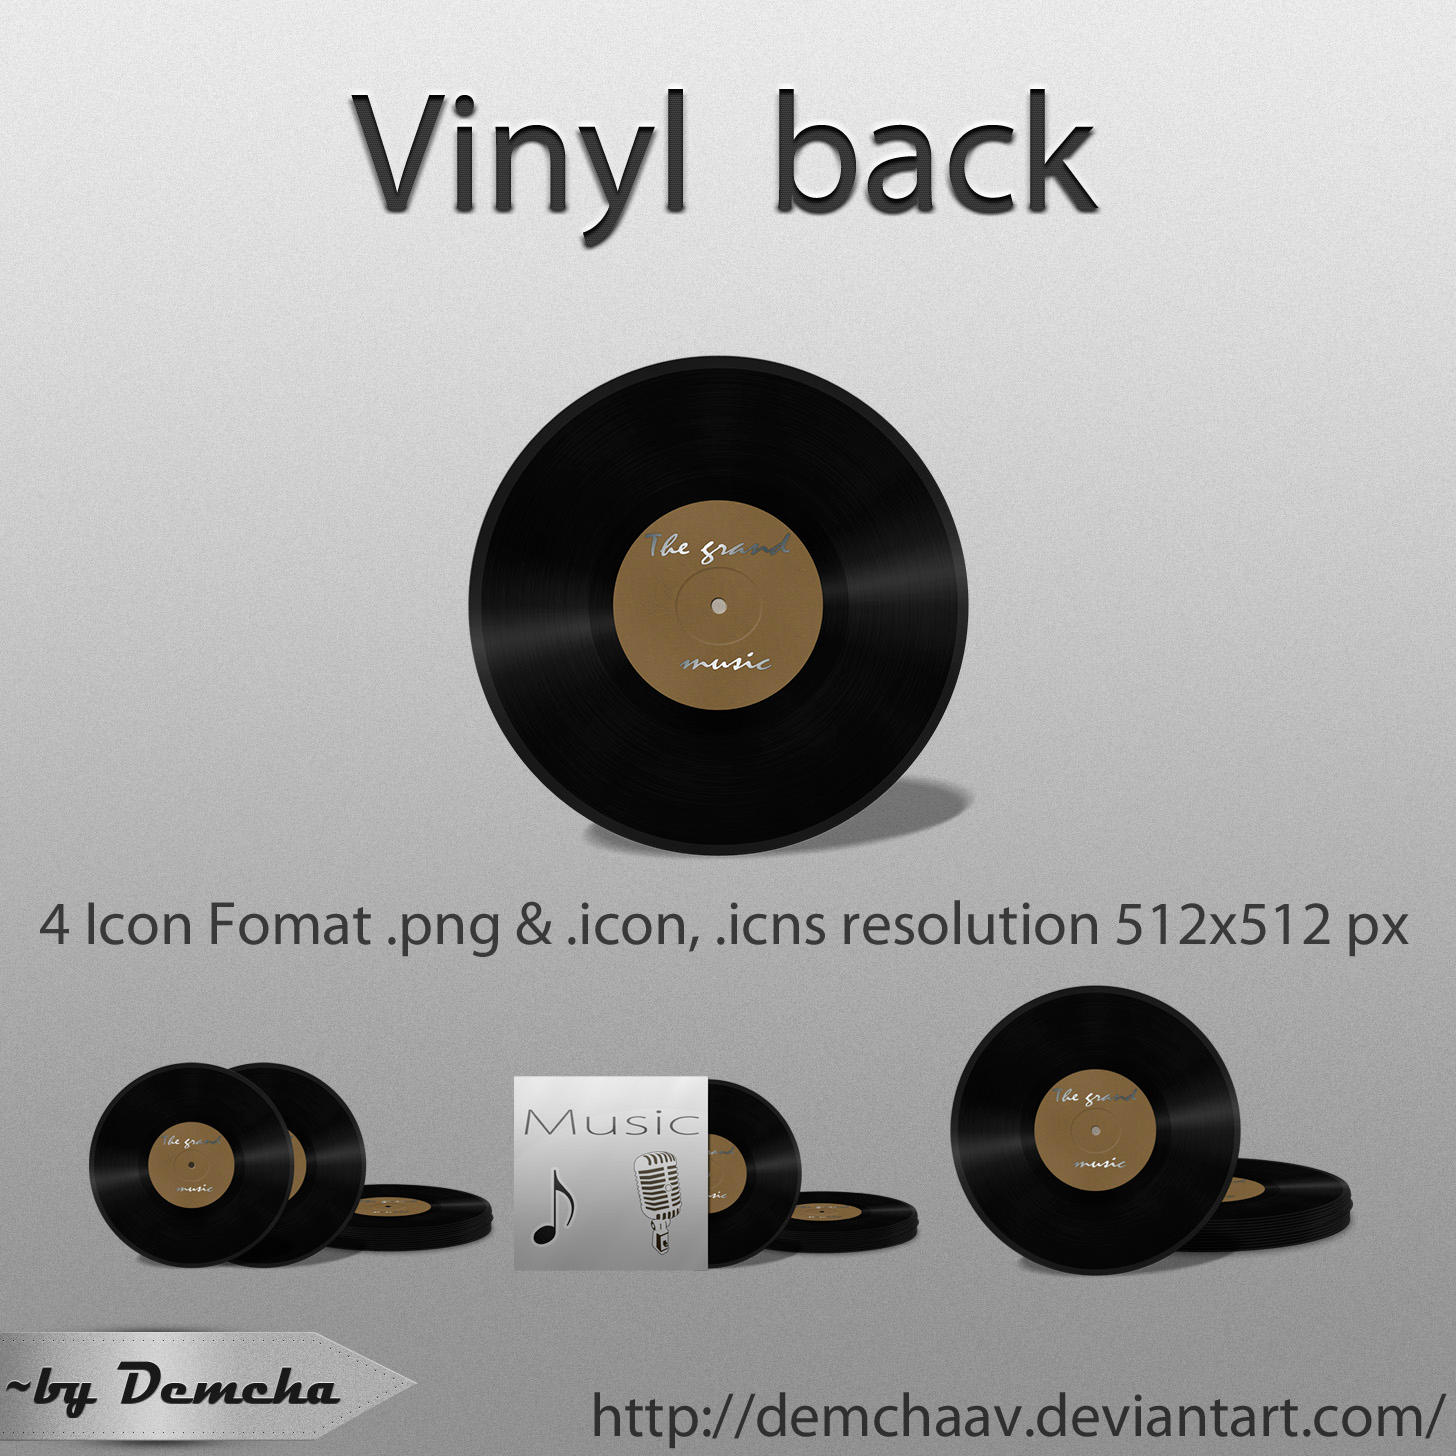 Vinyl back by DemchaAV